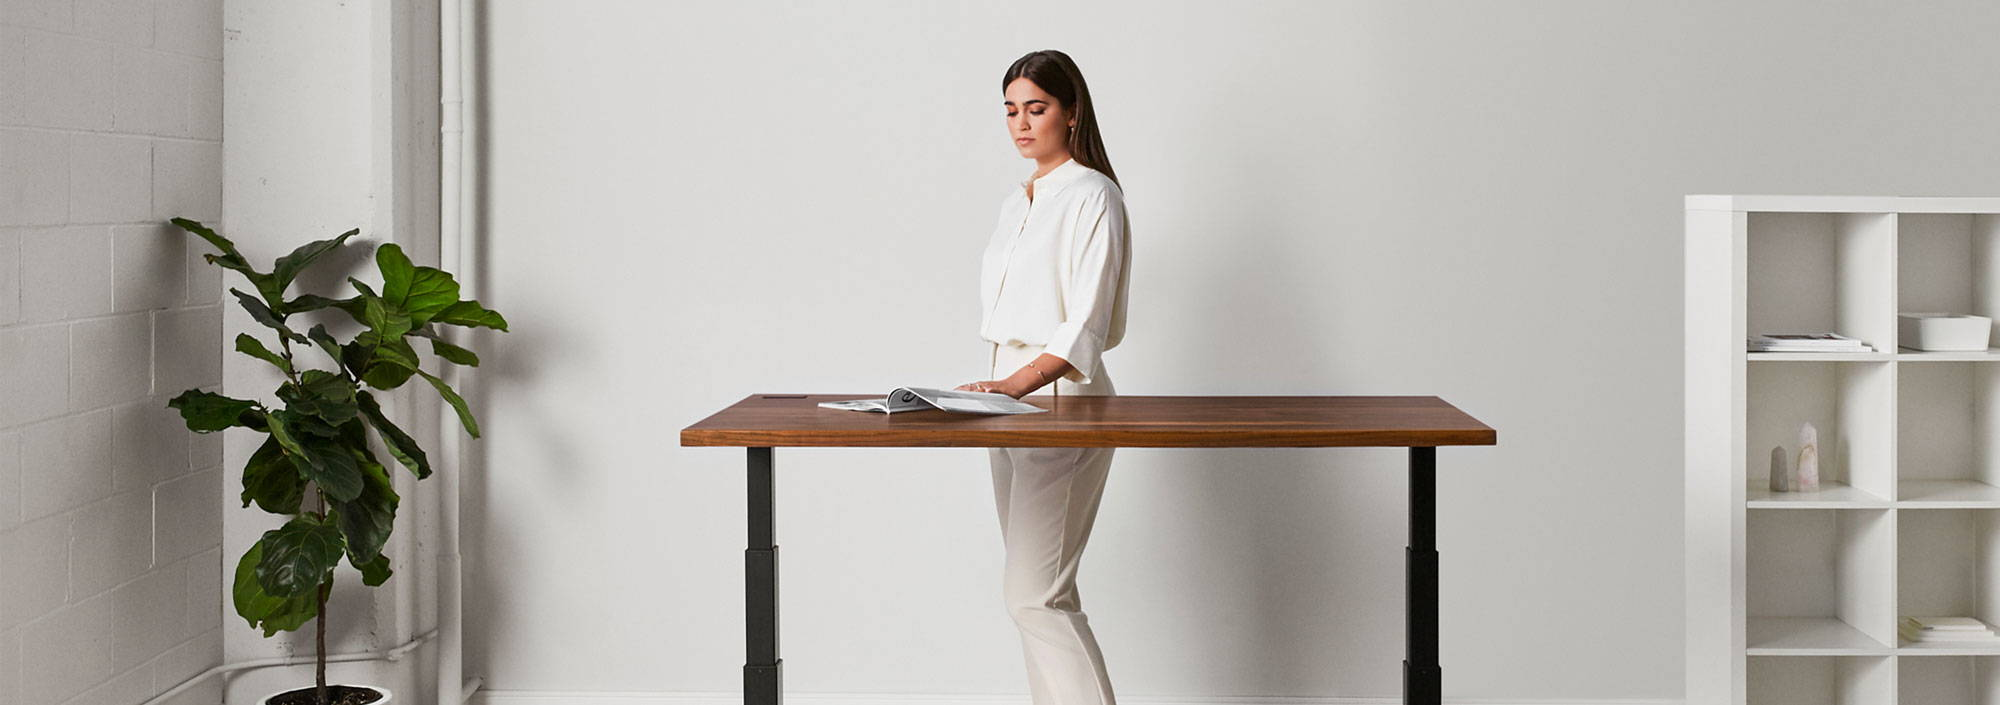 Sway sit-stand desk - ergonofis